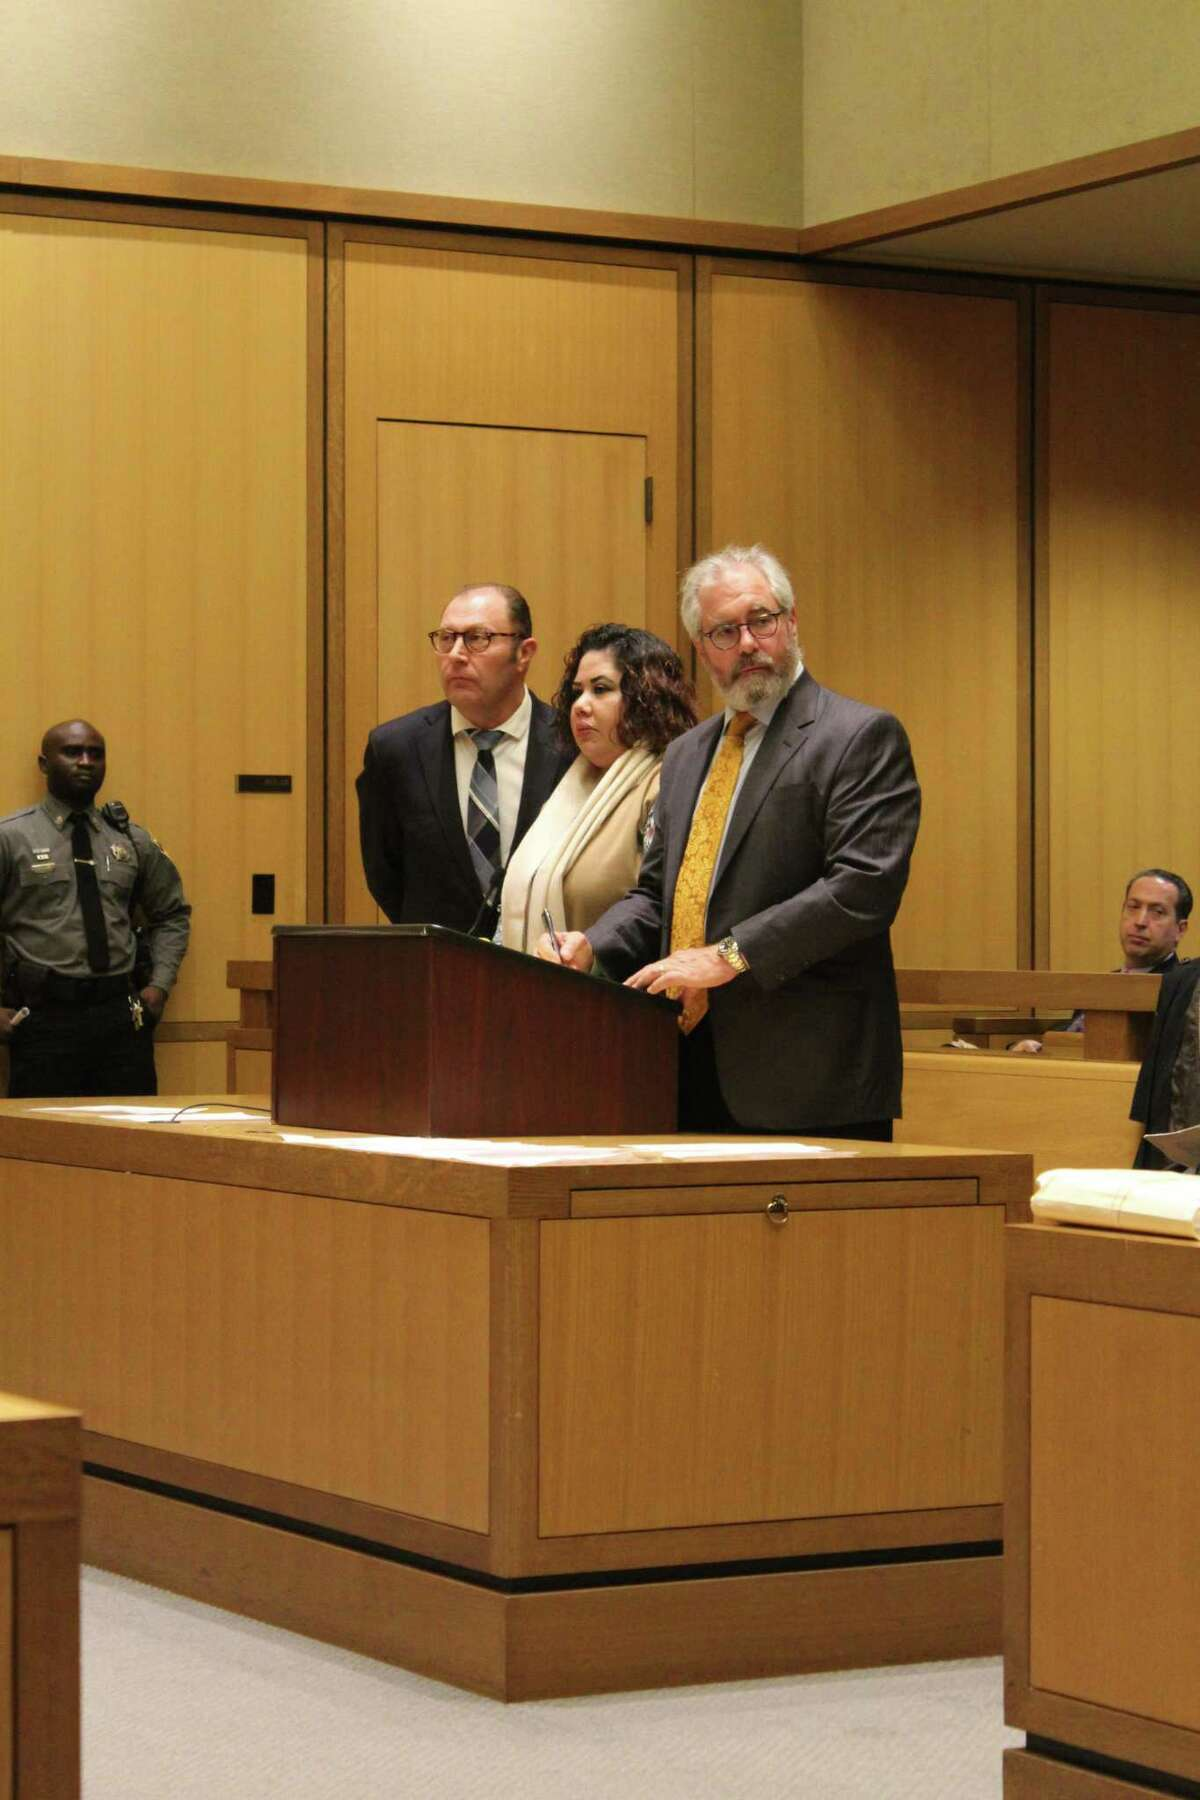 Nydia Carrillo-Maldonado, center, pleaded guilty to charges of first-degree manslaughter and risk of injury to a minor in Stamford Superior Court in December.